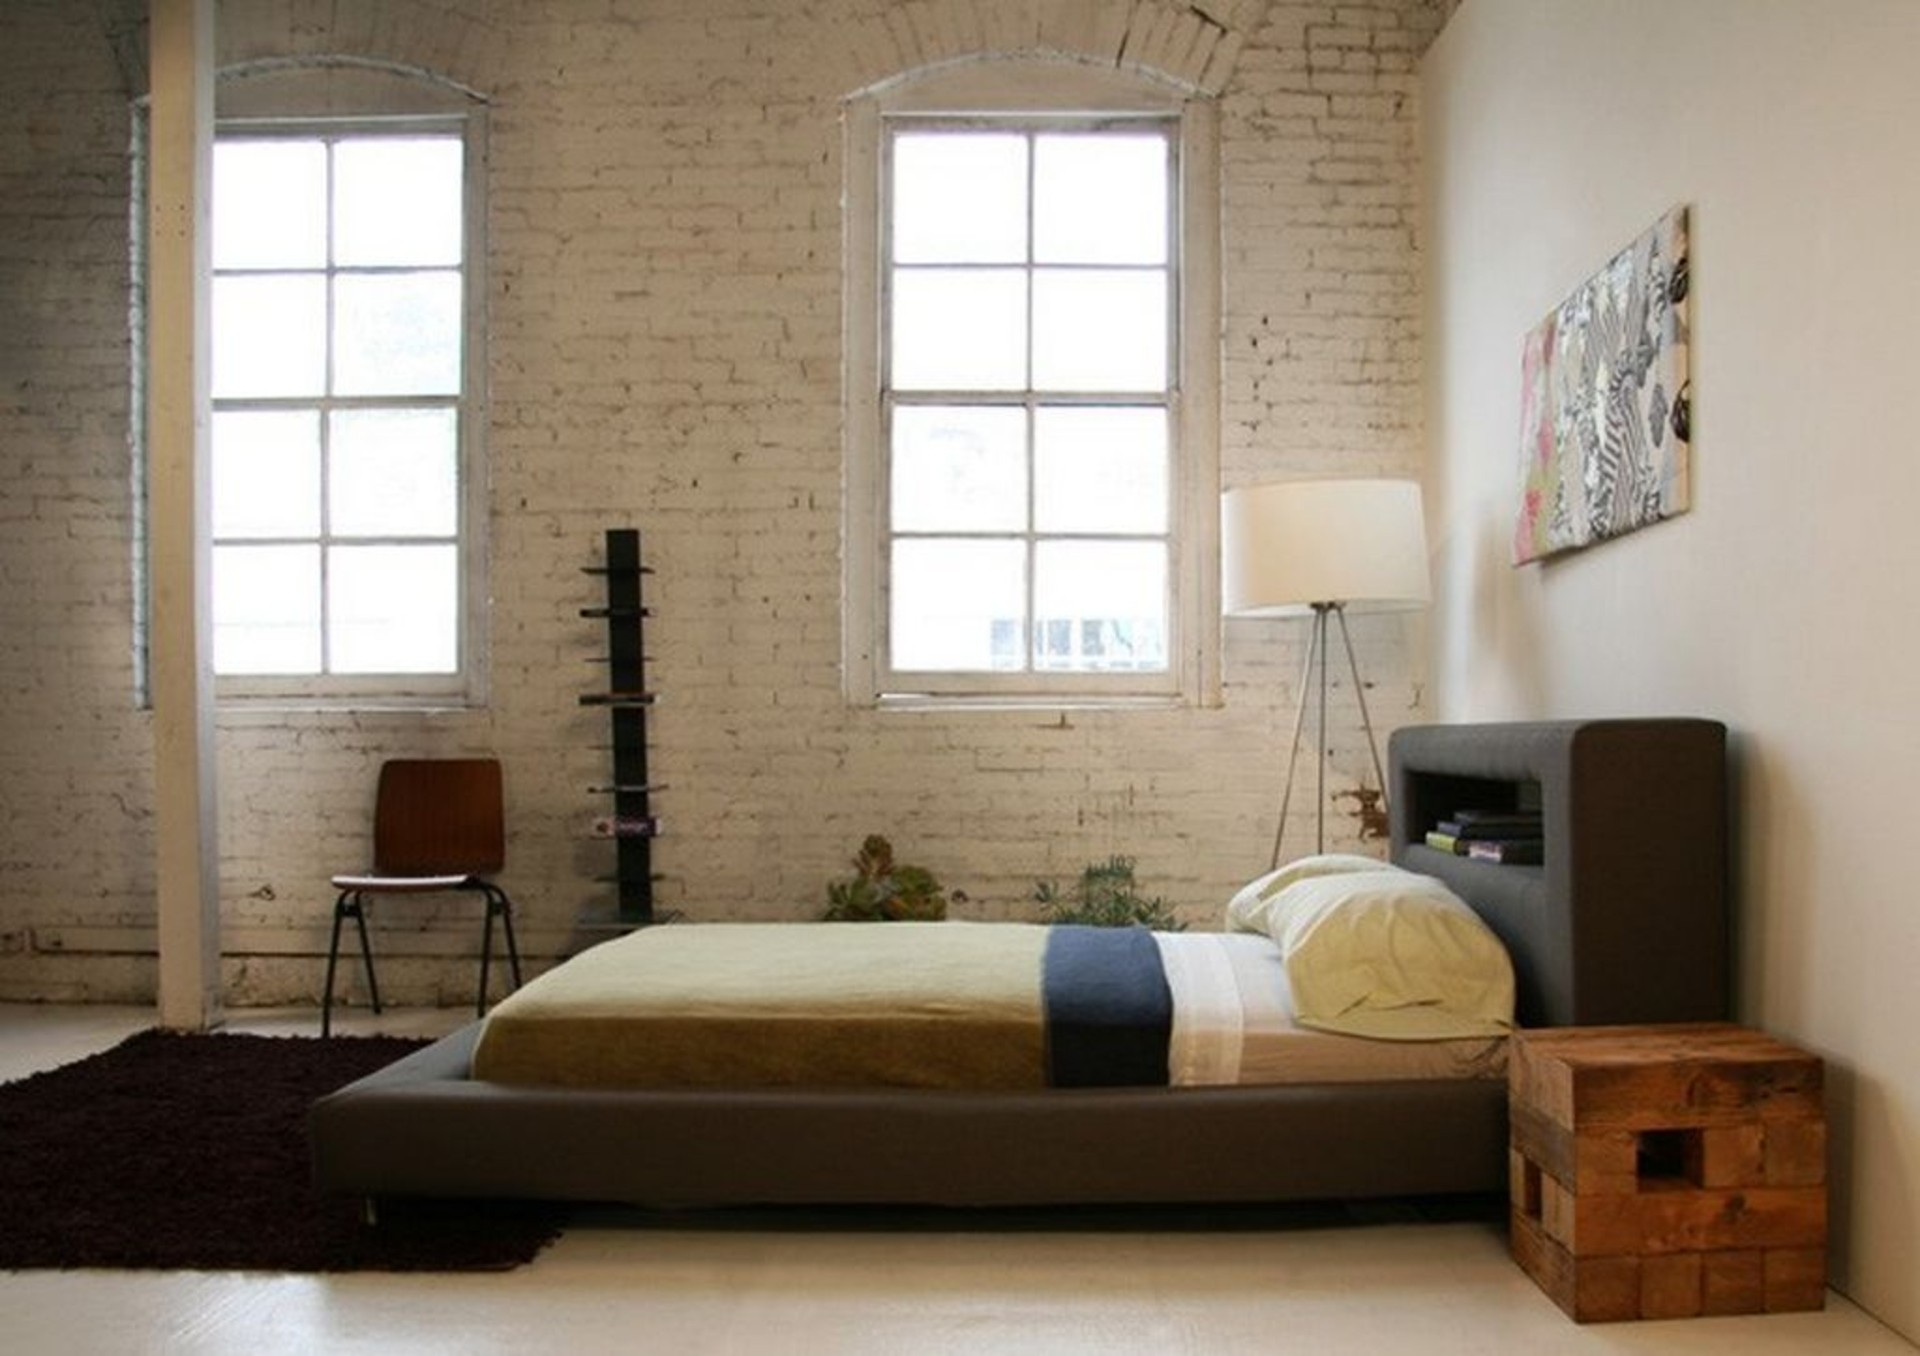 Minimalist Platform Bed: Designs and Pictures - HomesFeed on Minimalist Modern Simple Bedroom Design  id=12939